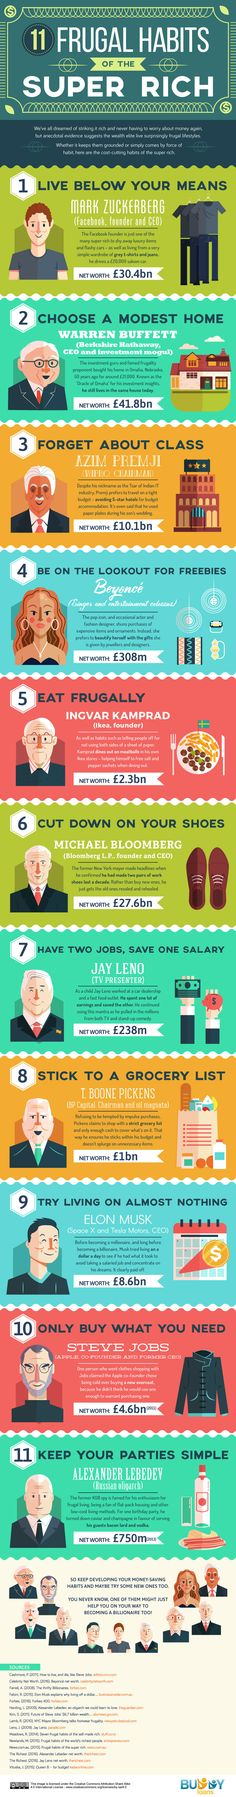 11 Surprisingly Frugal Habits of the World's Richest People